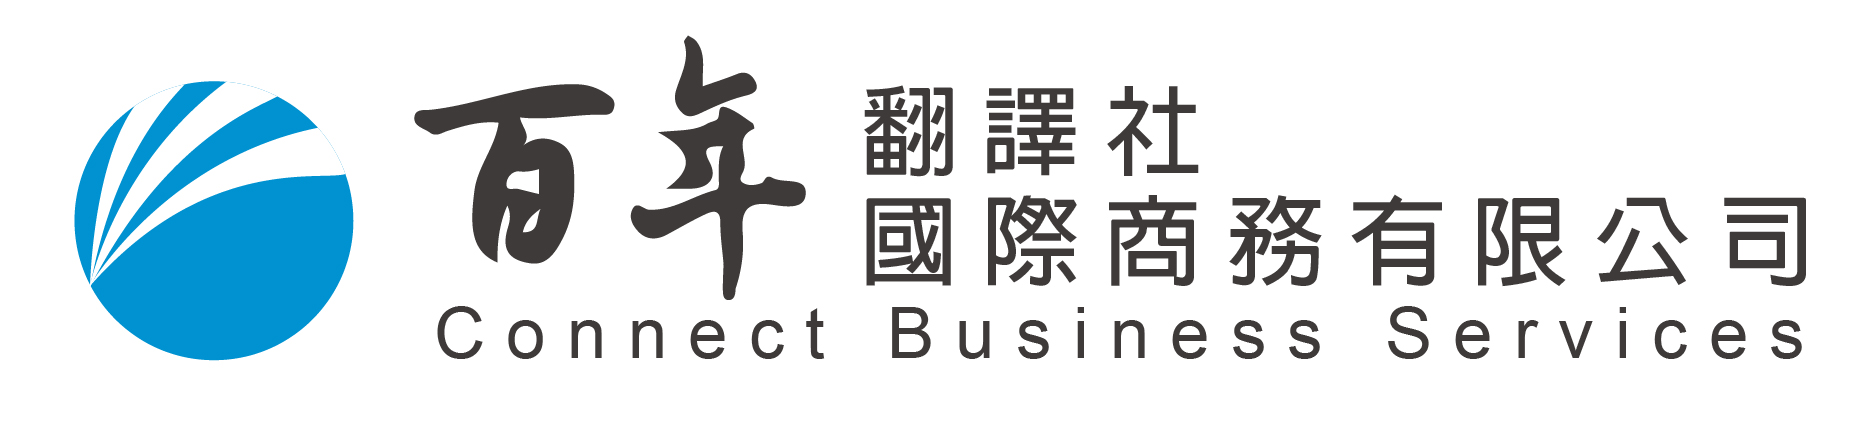 Connect Business Services